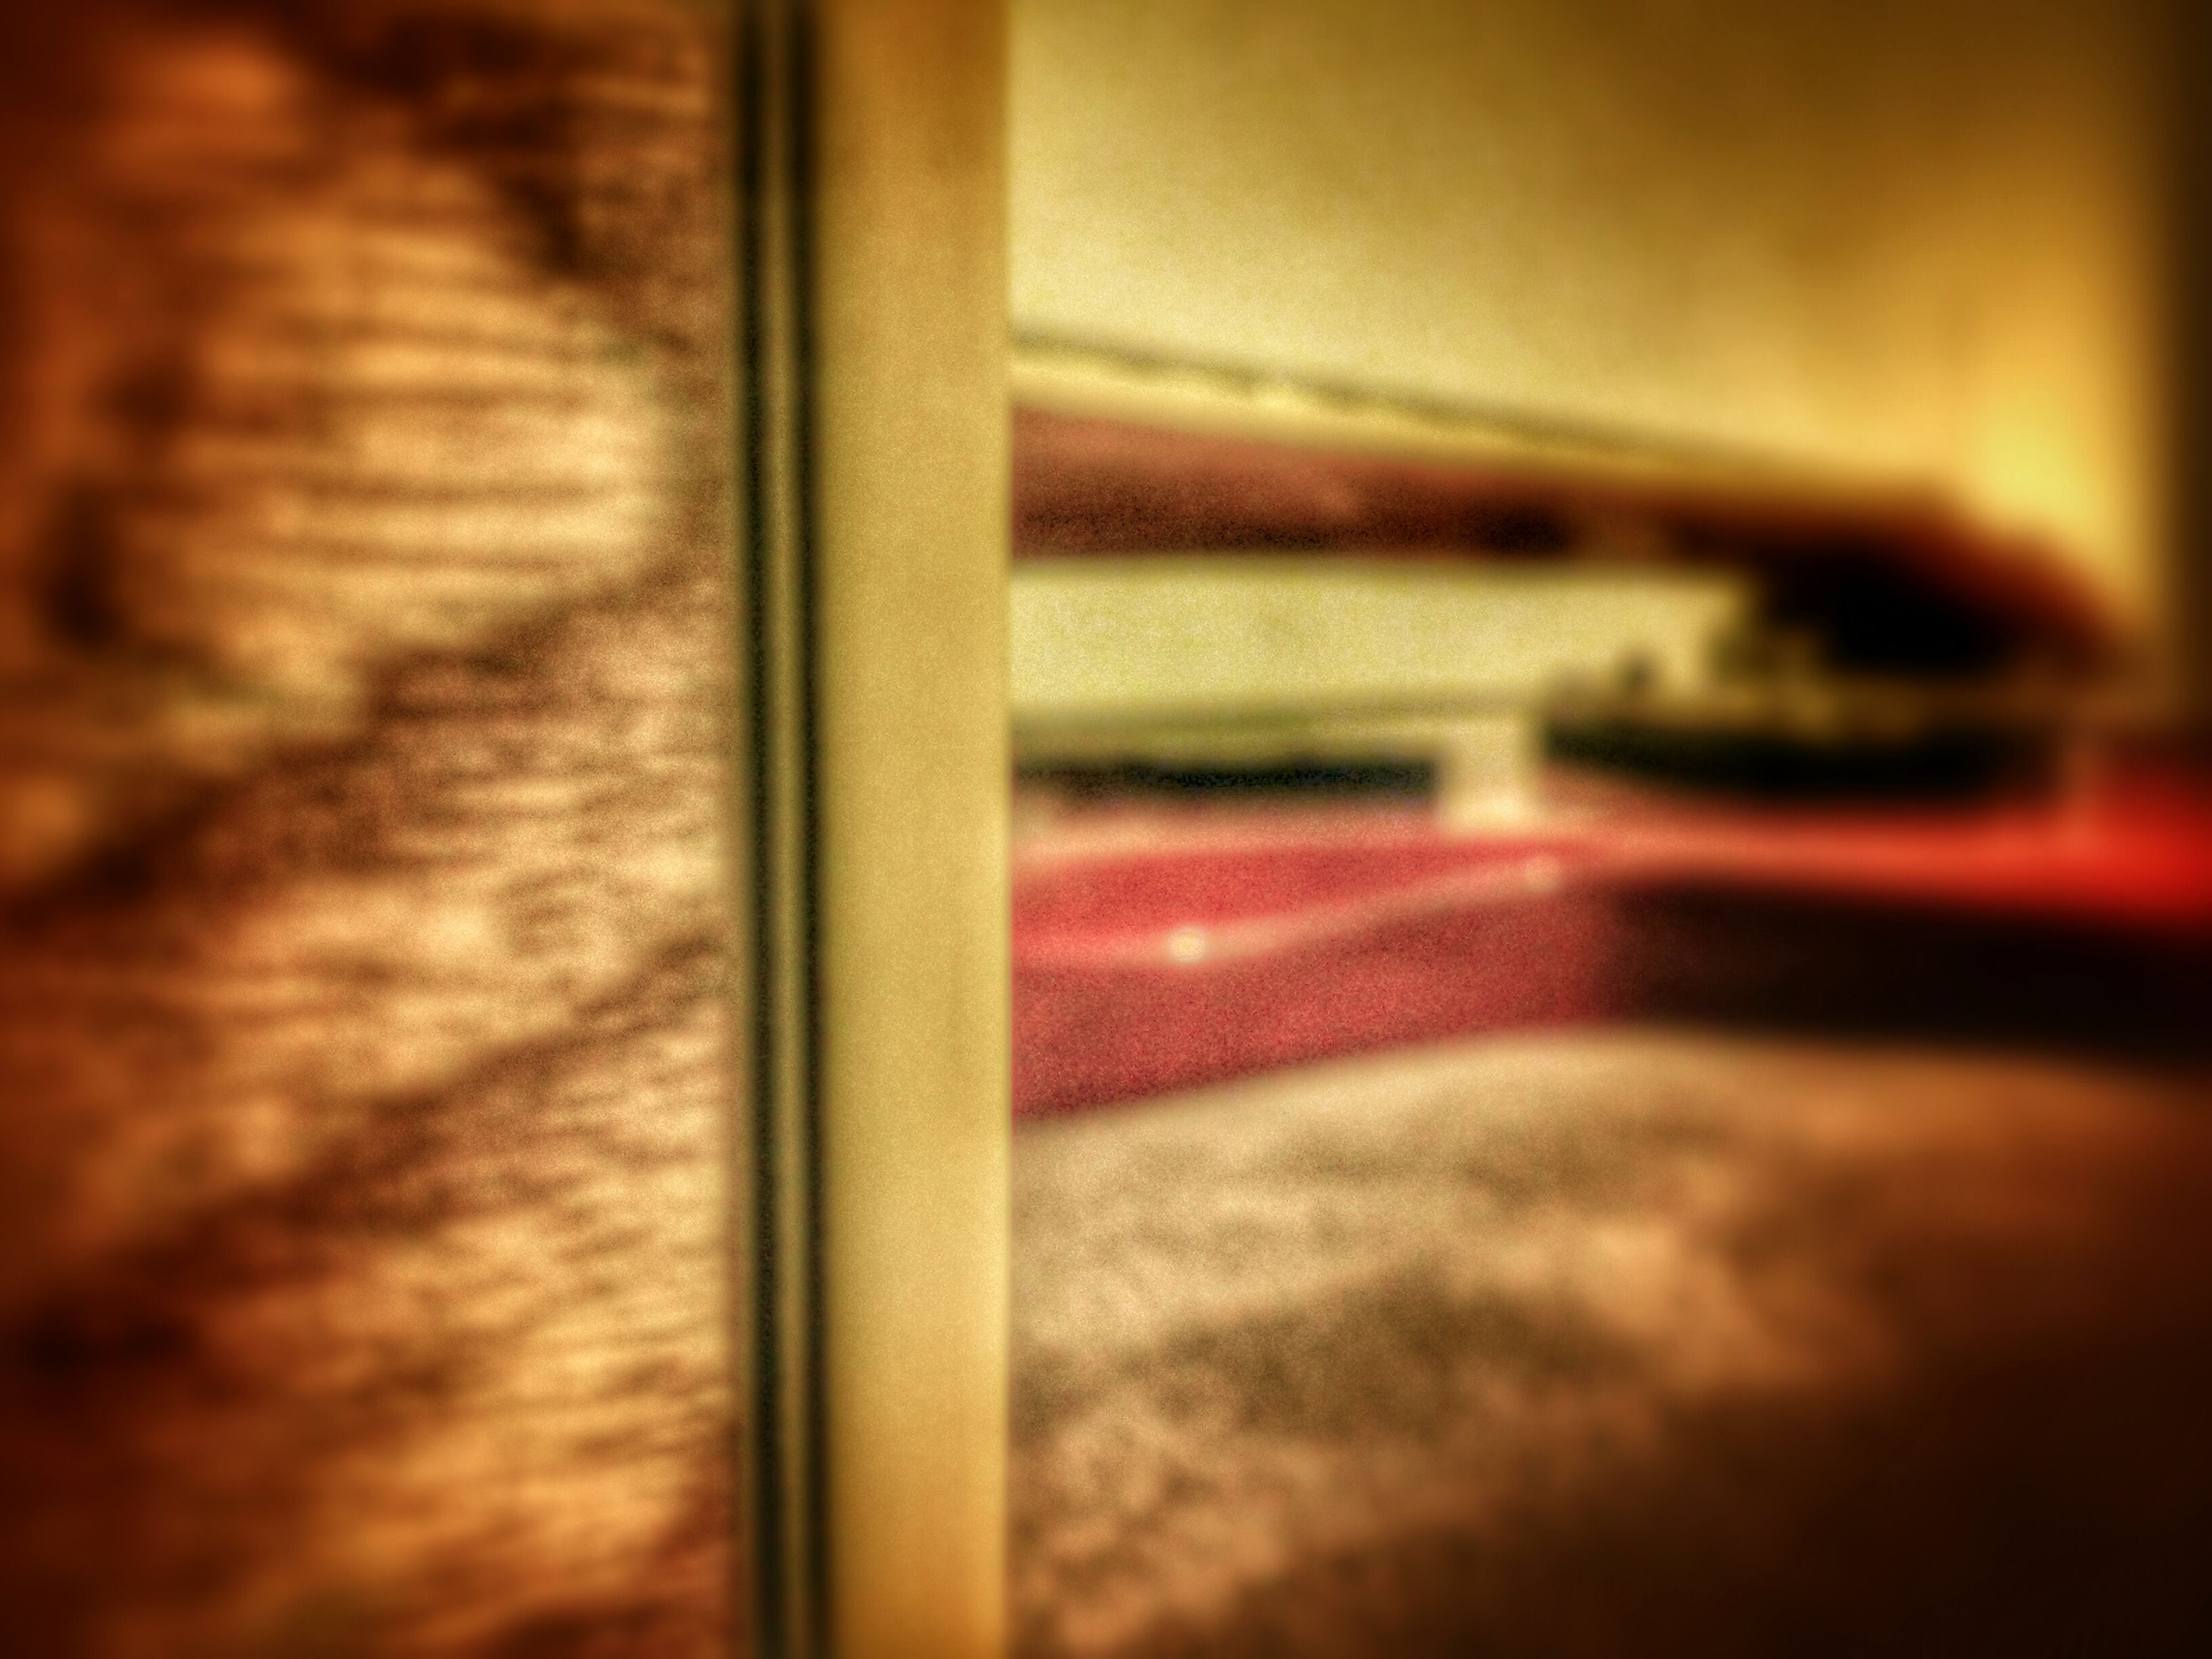 indoors, selective focus, close-up, home interior, red, no people, window, focus on foreground, flooring, absence, surface level, reflection, part of, door, detail, still life, table, wood - material, auto post production filter, curtain